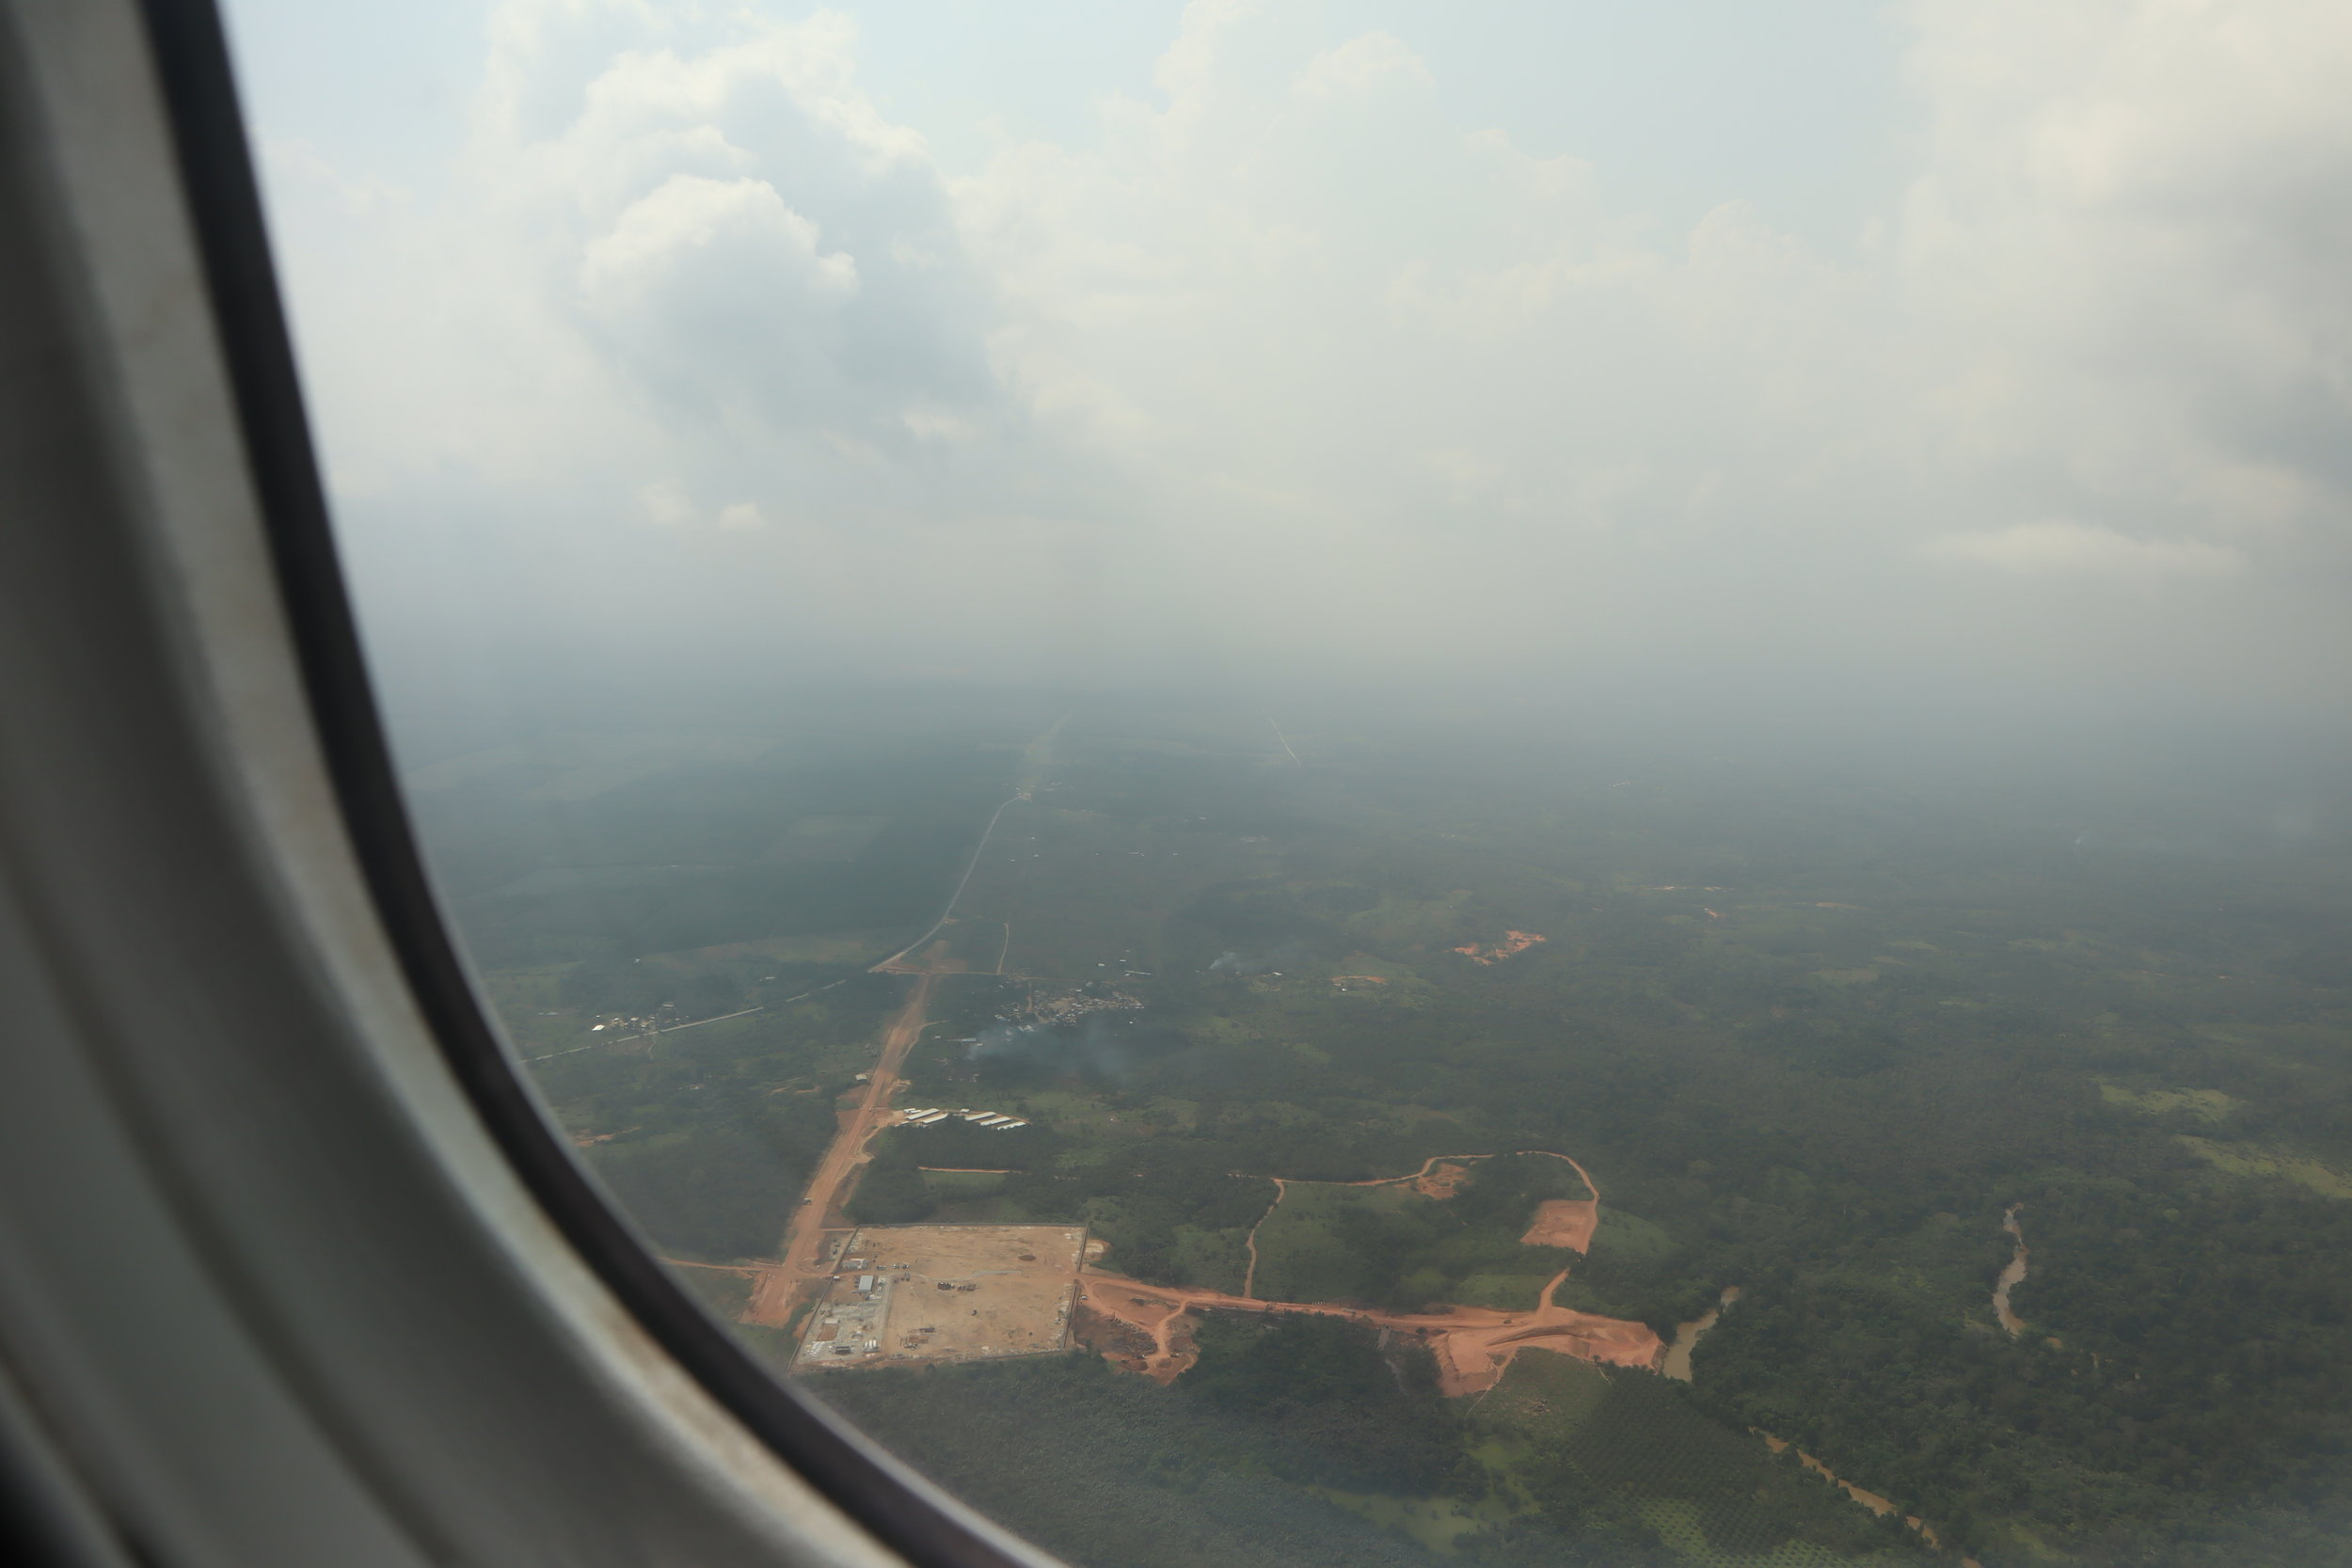 Ethiopian Airlines business class – Views on approach to Abidjan